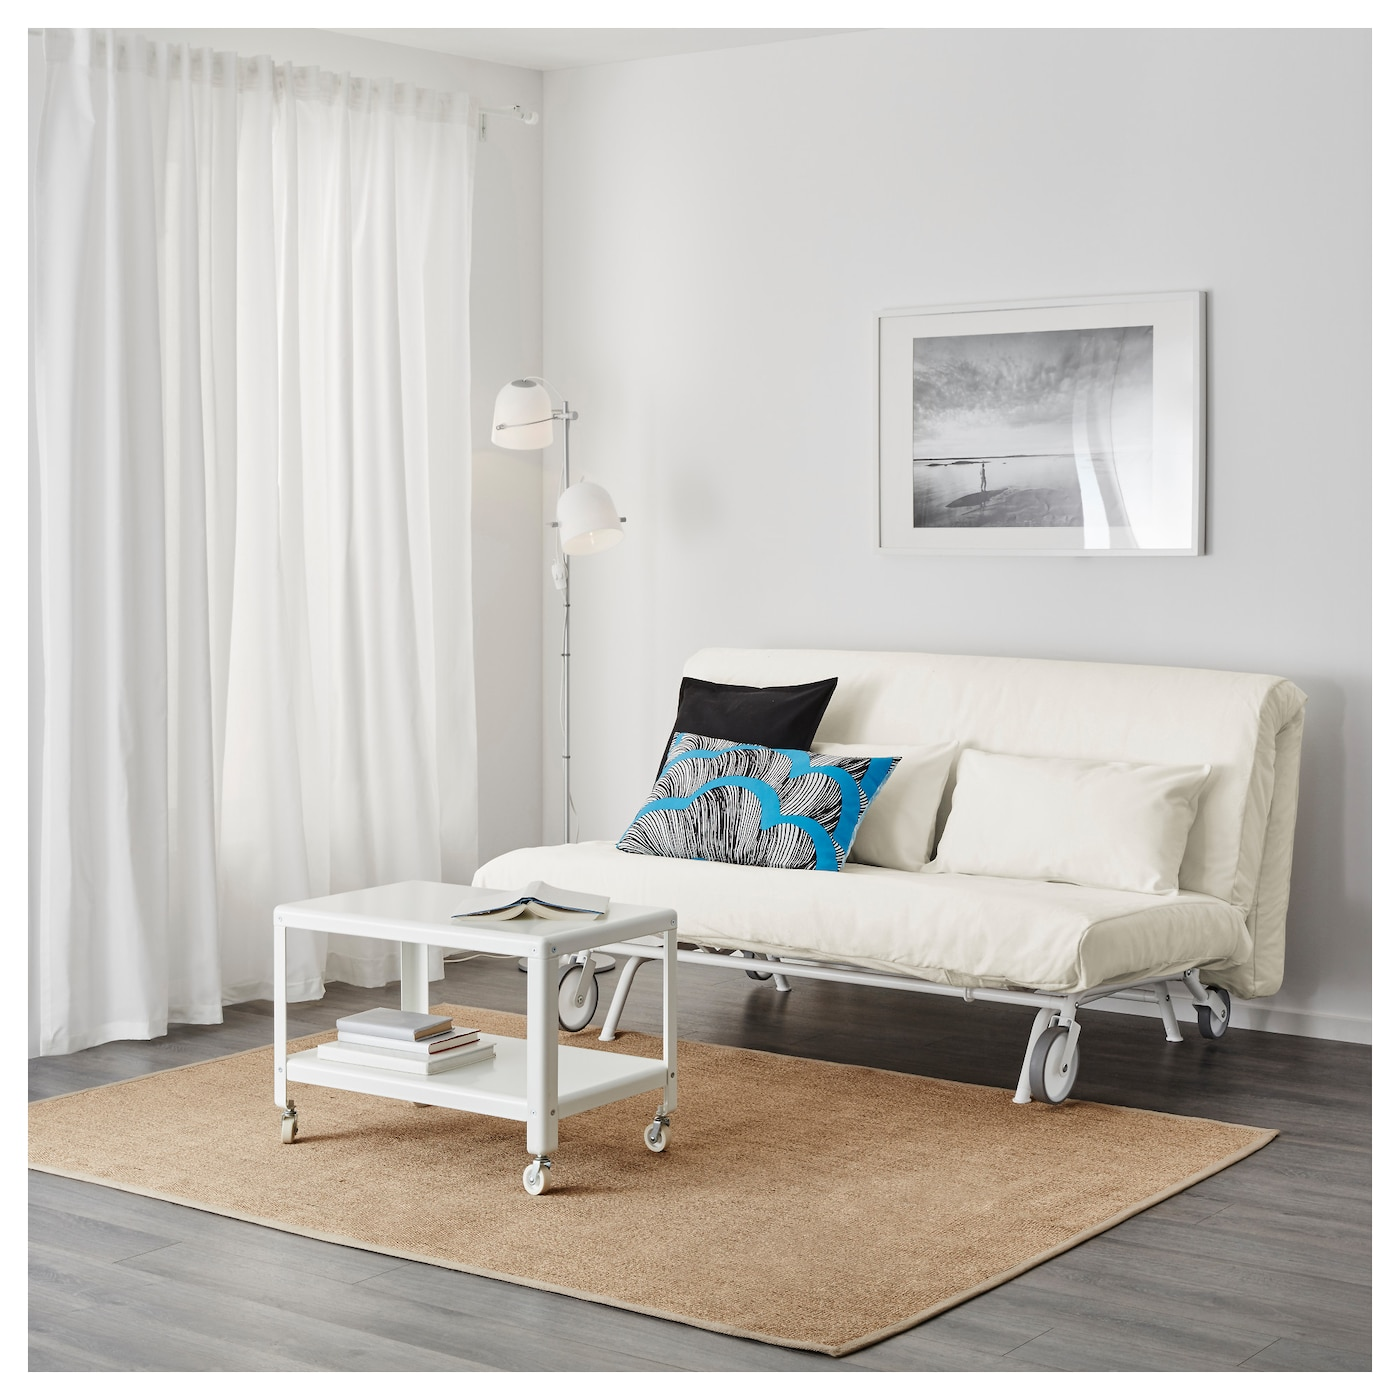 white chairs ikea ikea ps. ikea ps lvs twoseat sofabed a simple firm foam mattress white chairs ikea ps